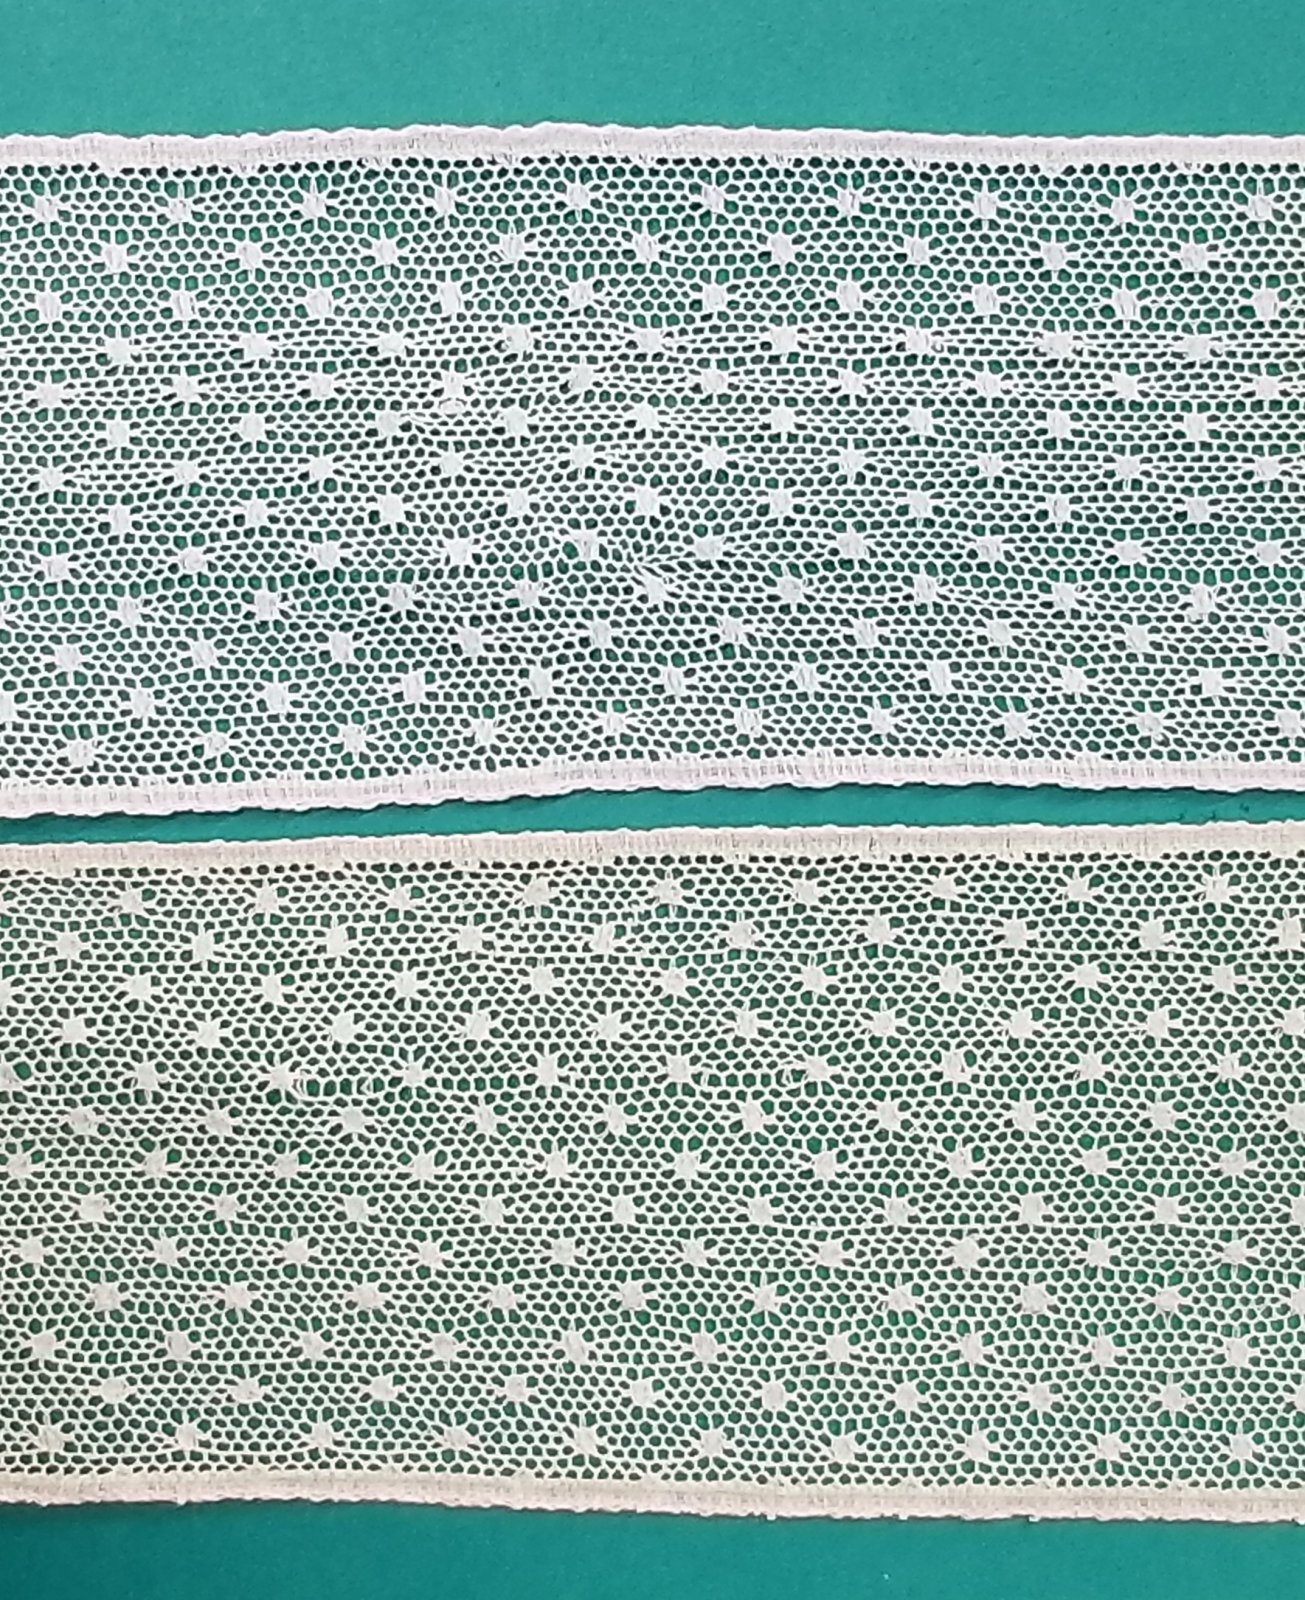 21406 Insertion French Val Lace